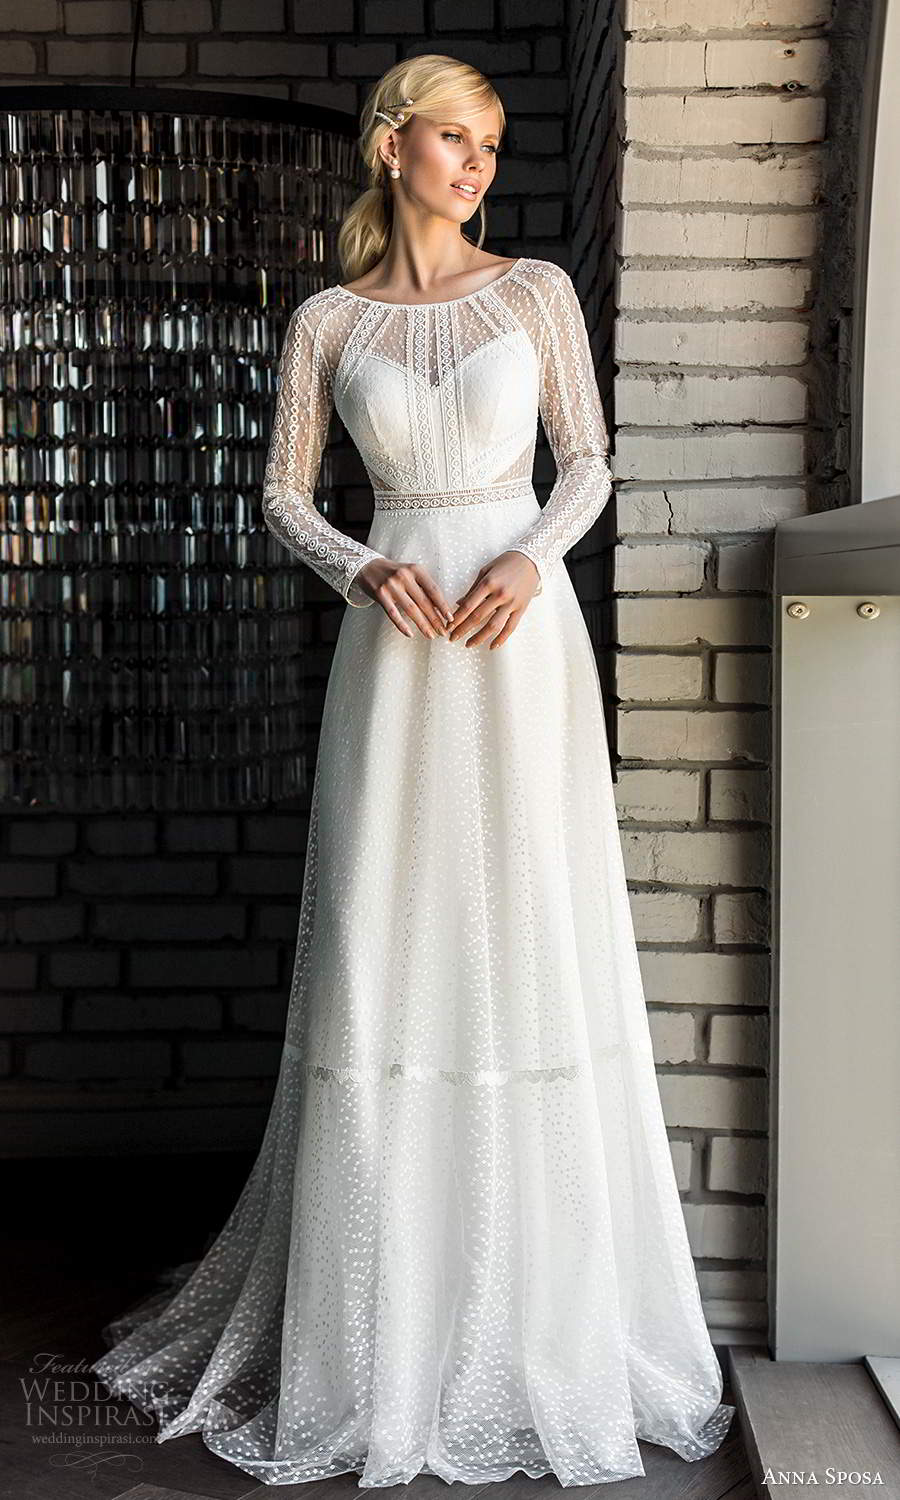 anna sposa 2021 boho bridal sheer long sleeves bateau neckline embellished bodice a line ball gown wedding dress (17) mv